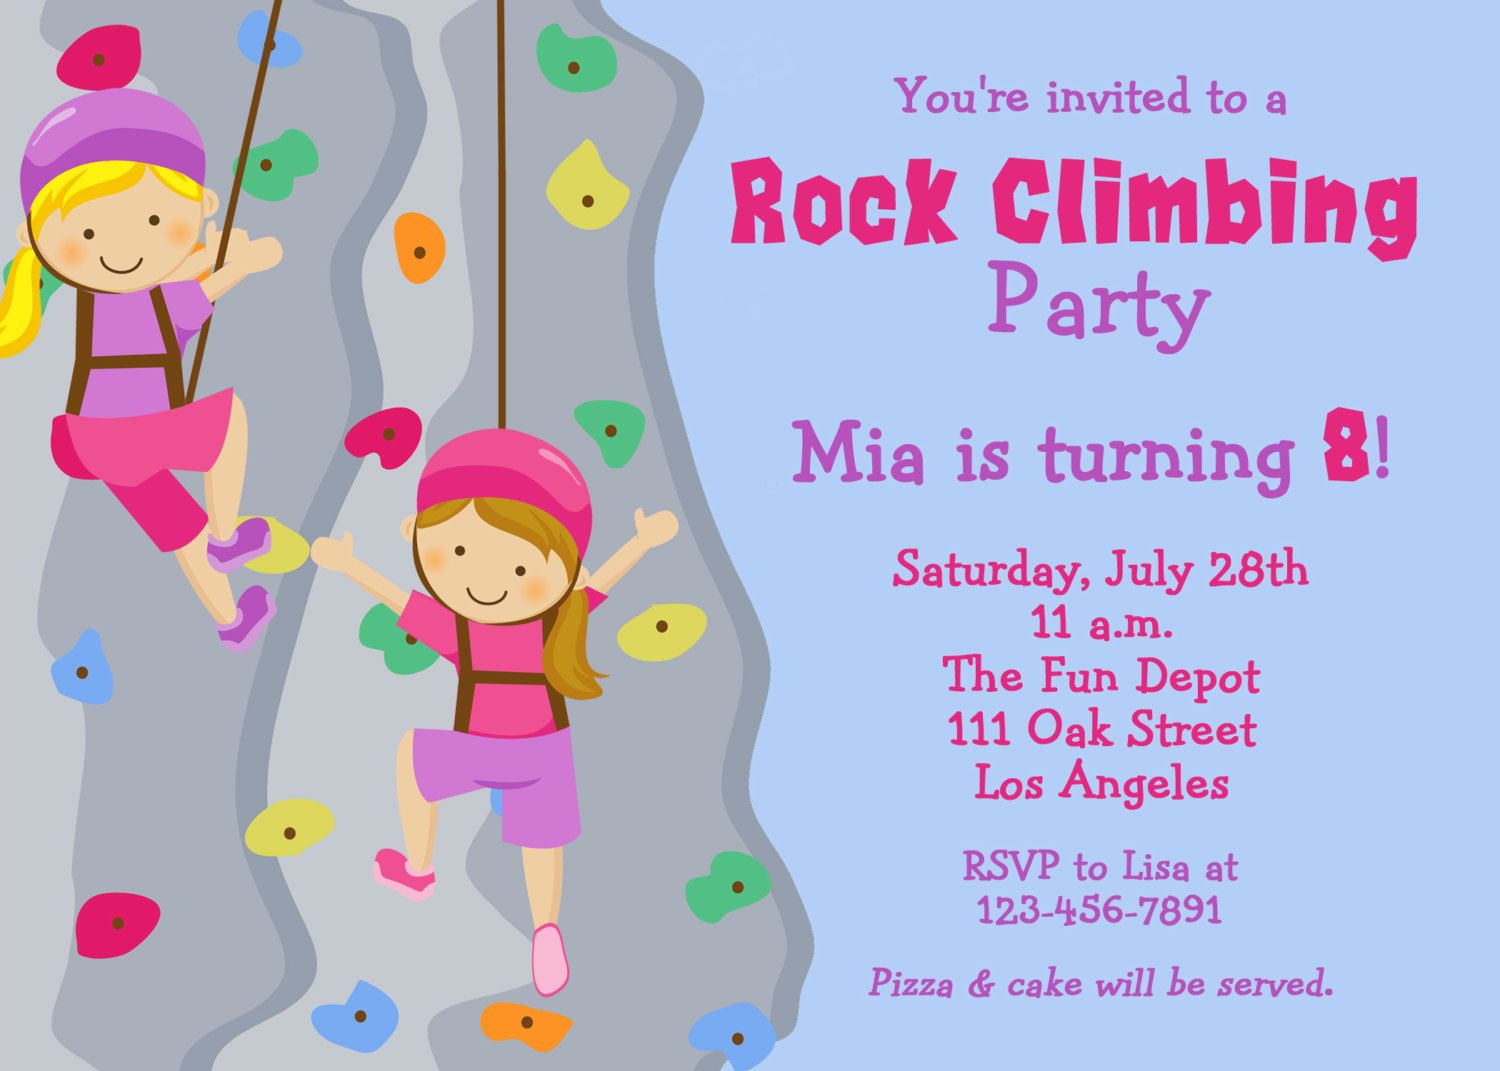 rock climbing birthday party invitations printable ; 85522292ca52d5ebc602dafb4291289a